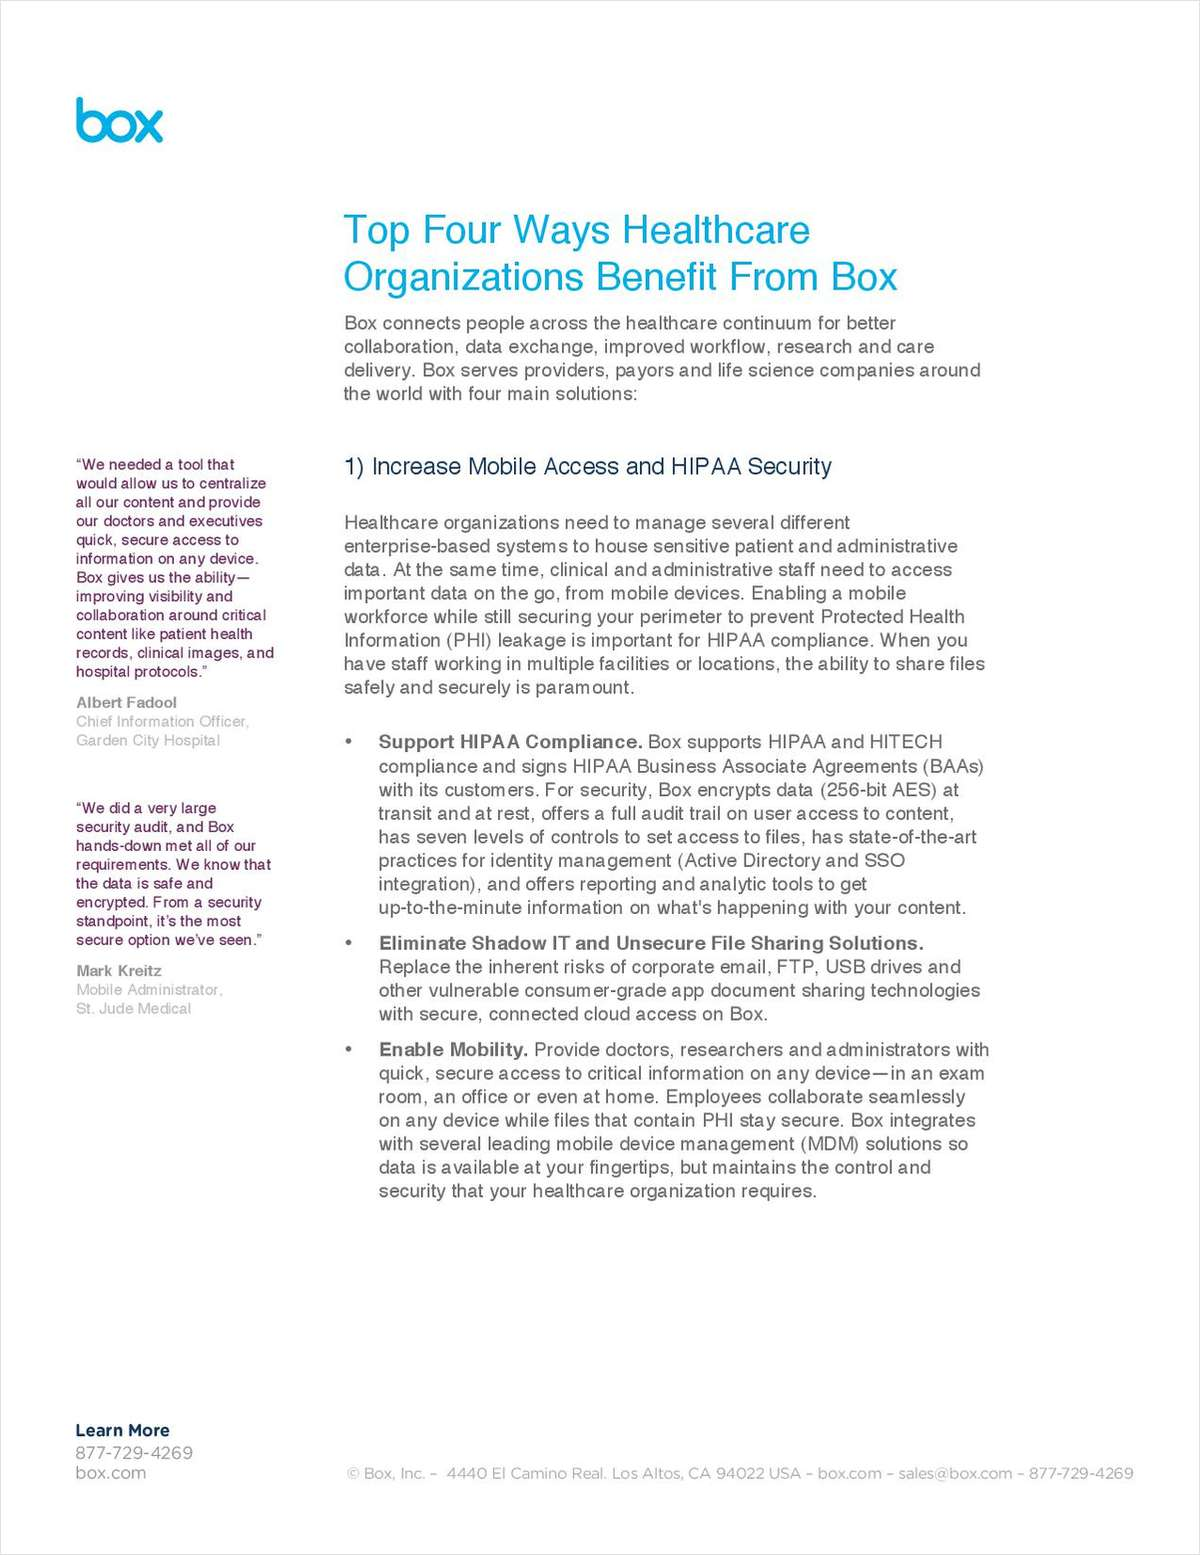 Top Four Ways Healthcare Organizations Can Improve Their Collaborative Workplace